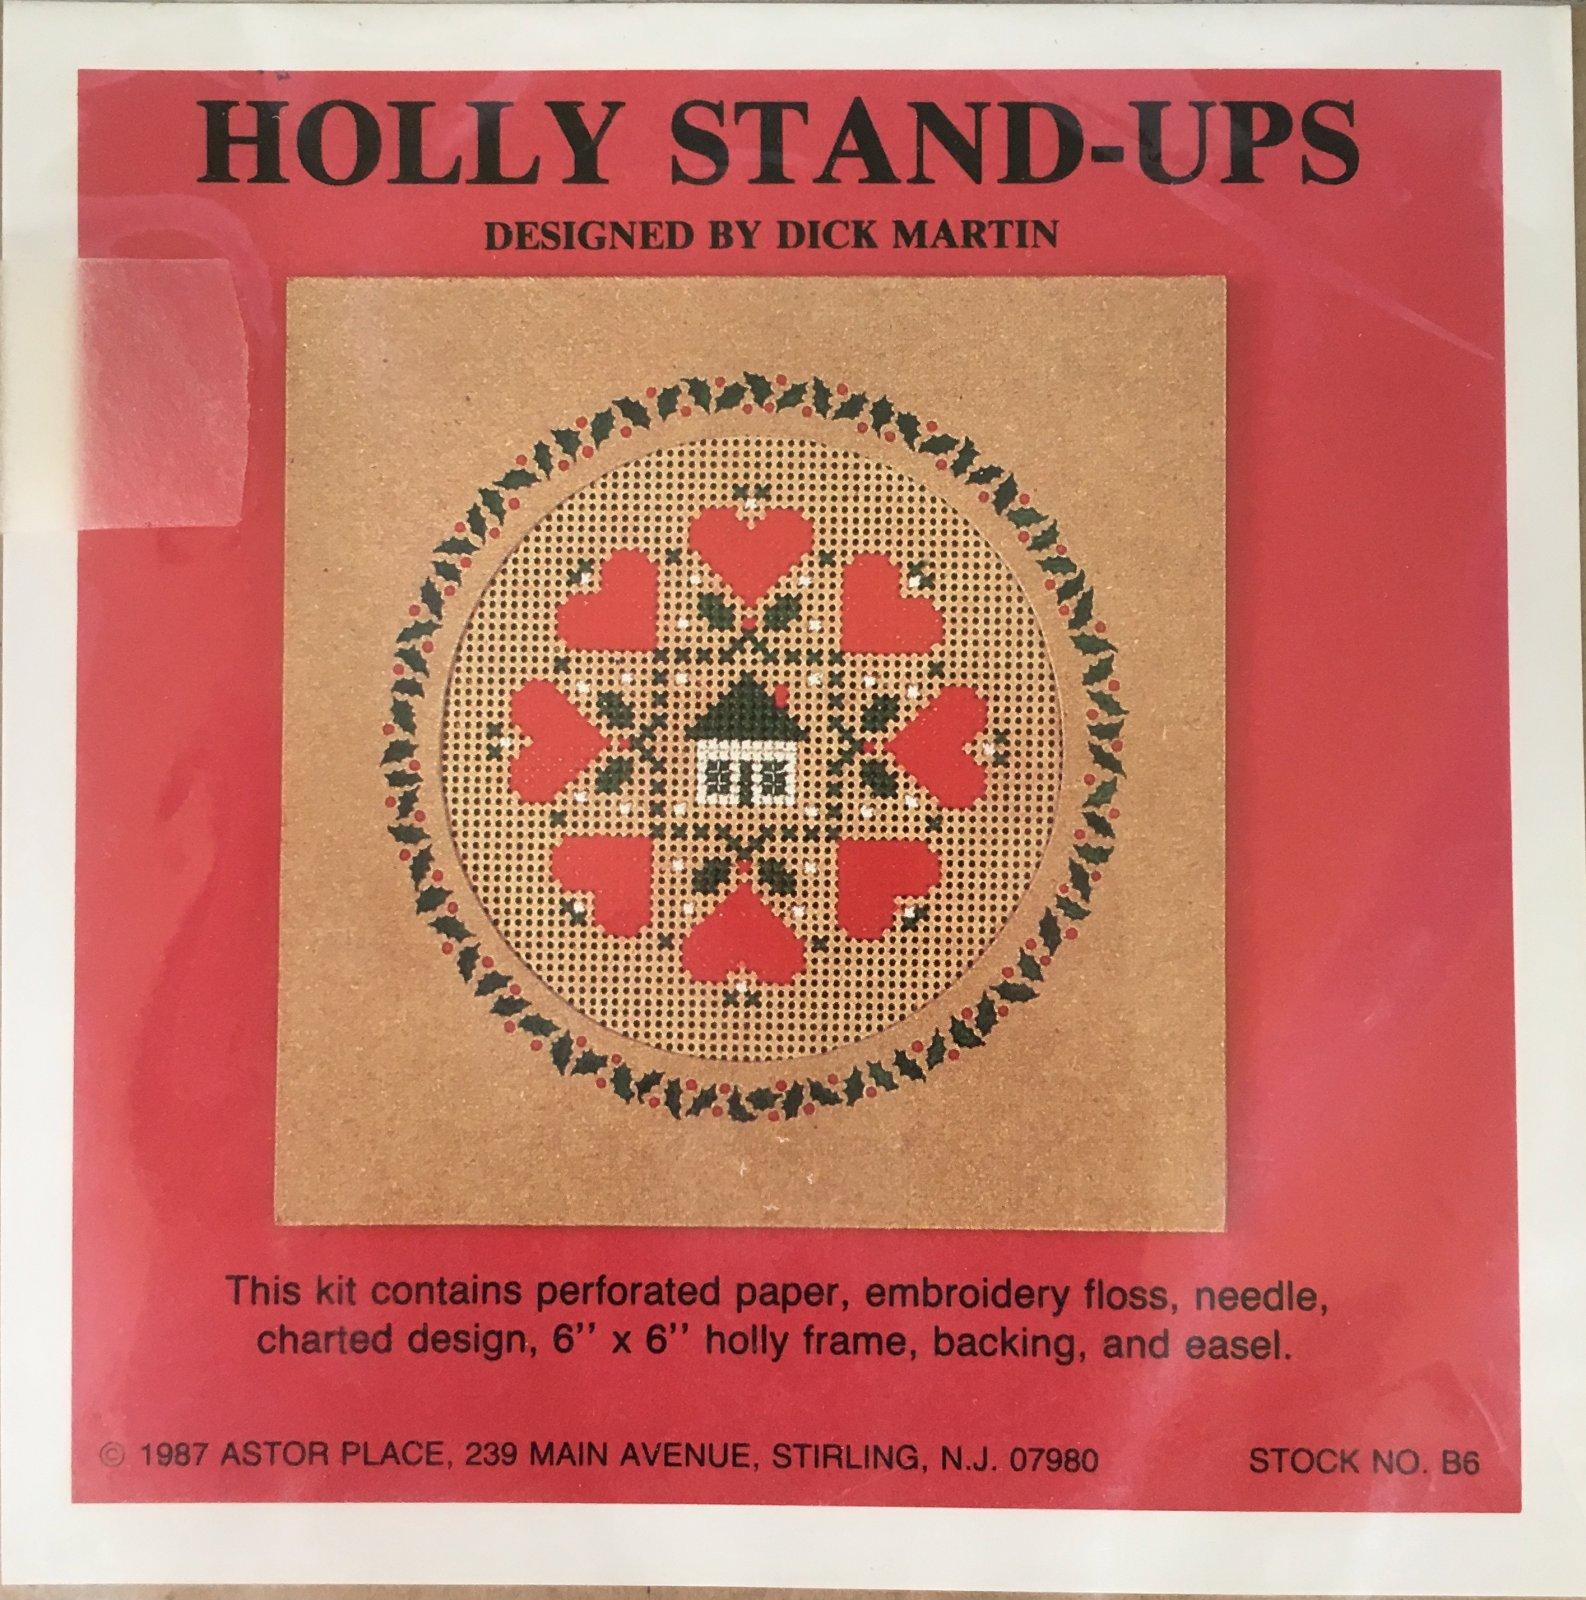 Astor Place: Holly Stand-Ups Hearts Kit B6